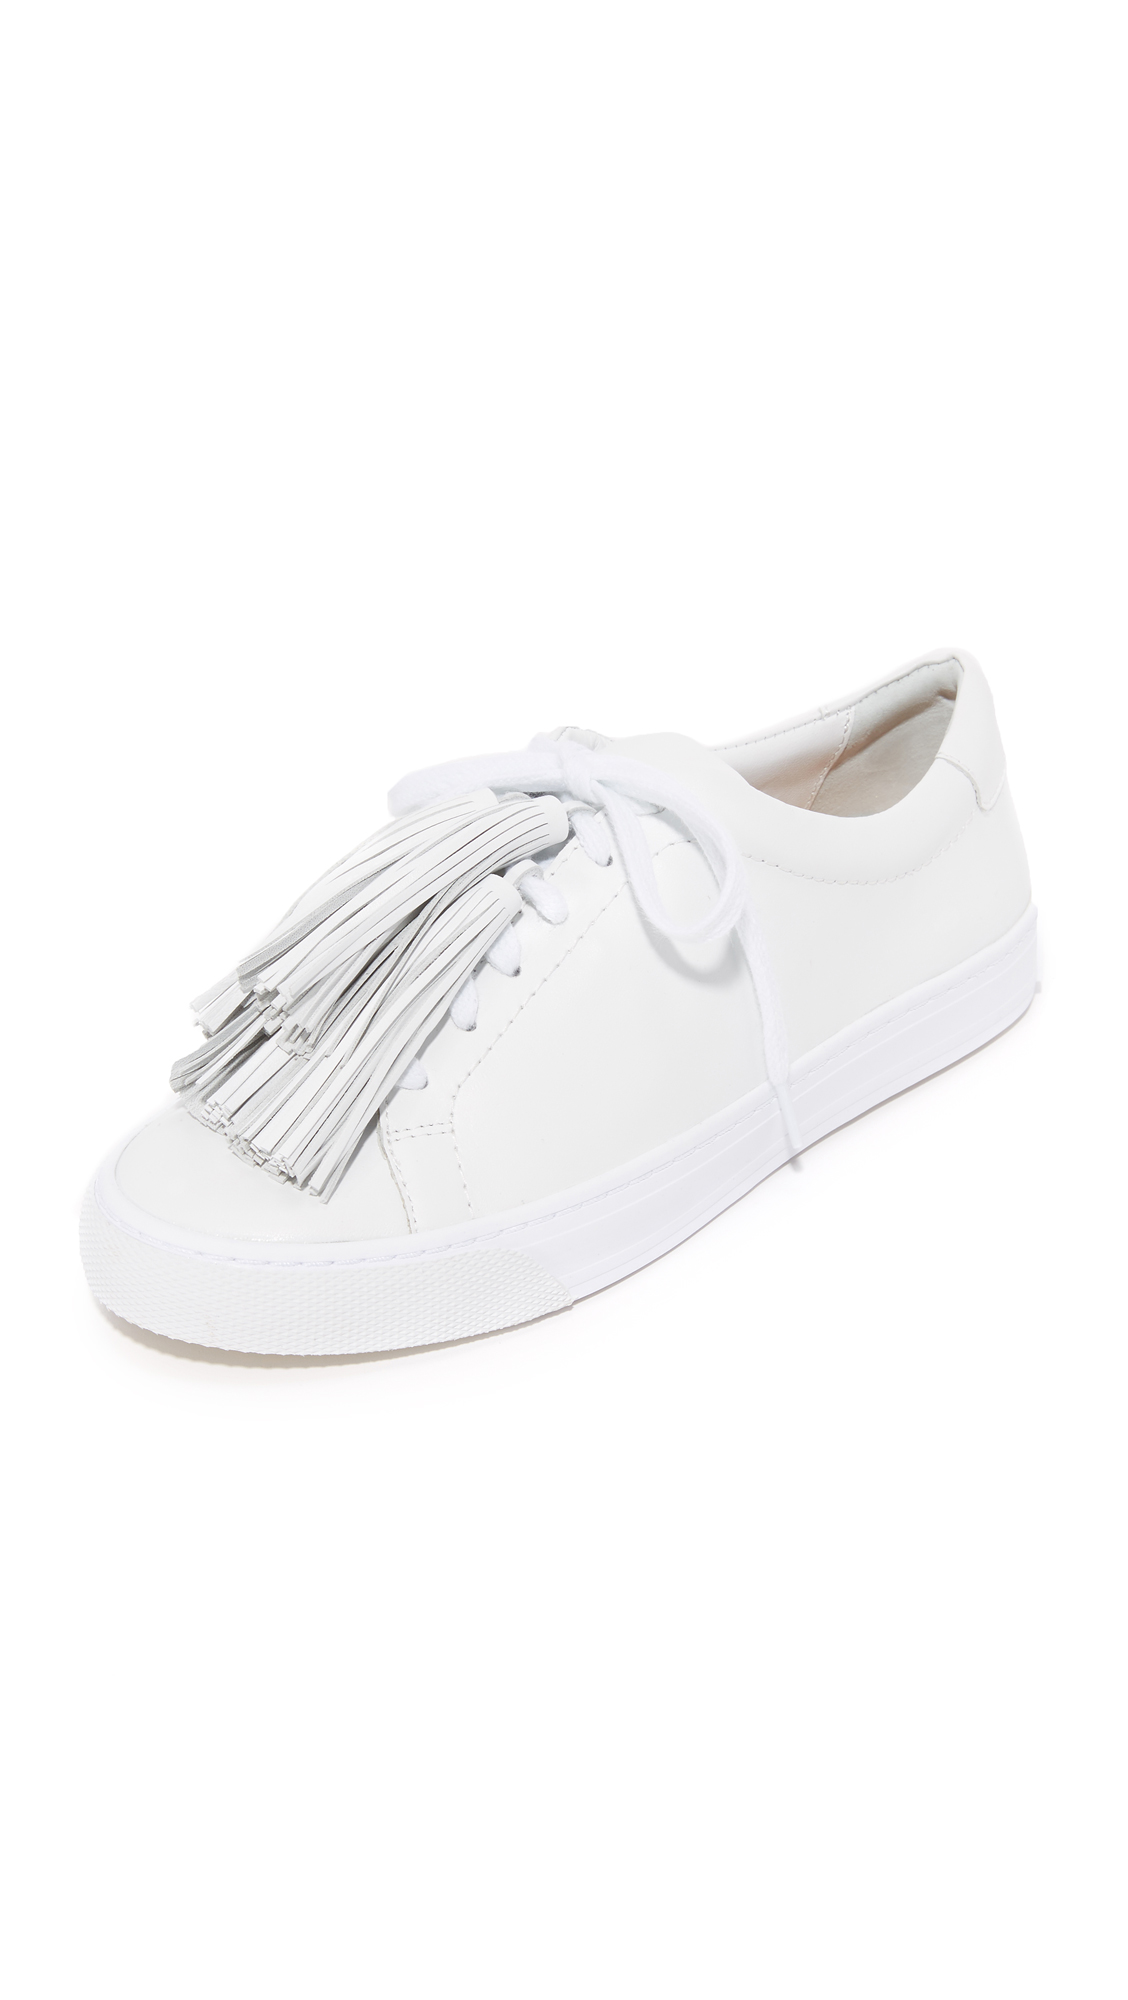 Loeffler Randall Logan Tassel Sneakers - Optic White